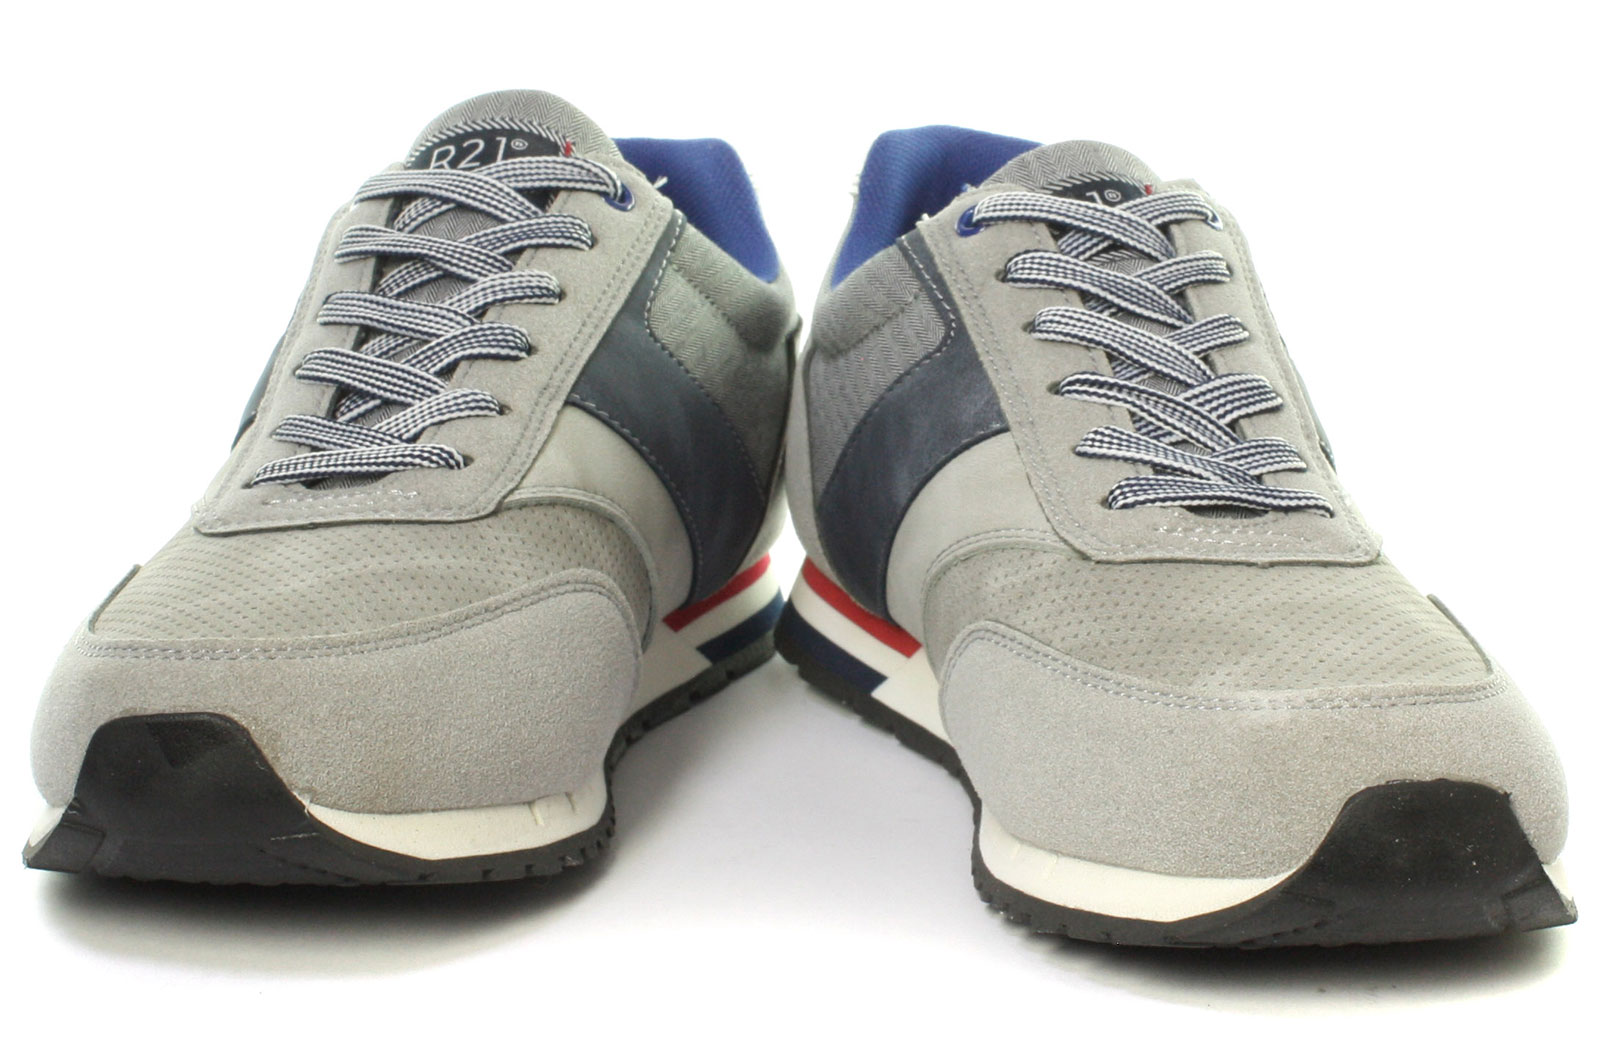 New Route 21 M708 6 Eye Mens Casual Trainer Shoes ALL SIZES AND COLOURS